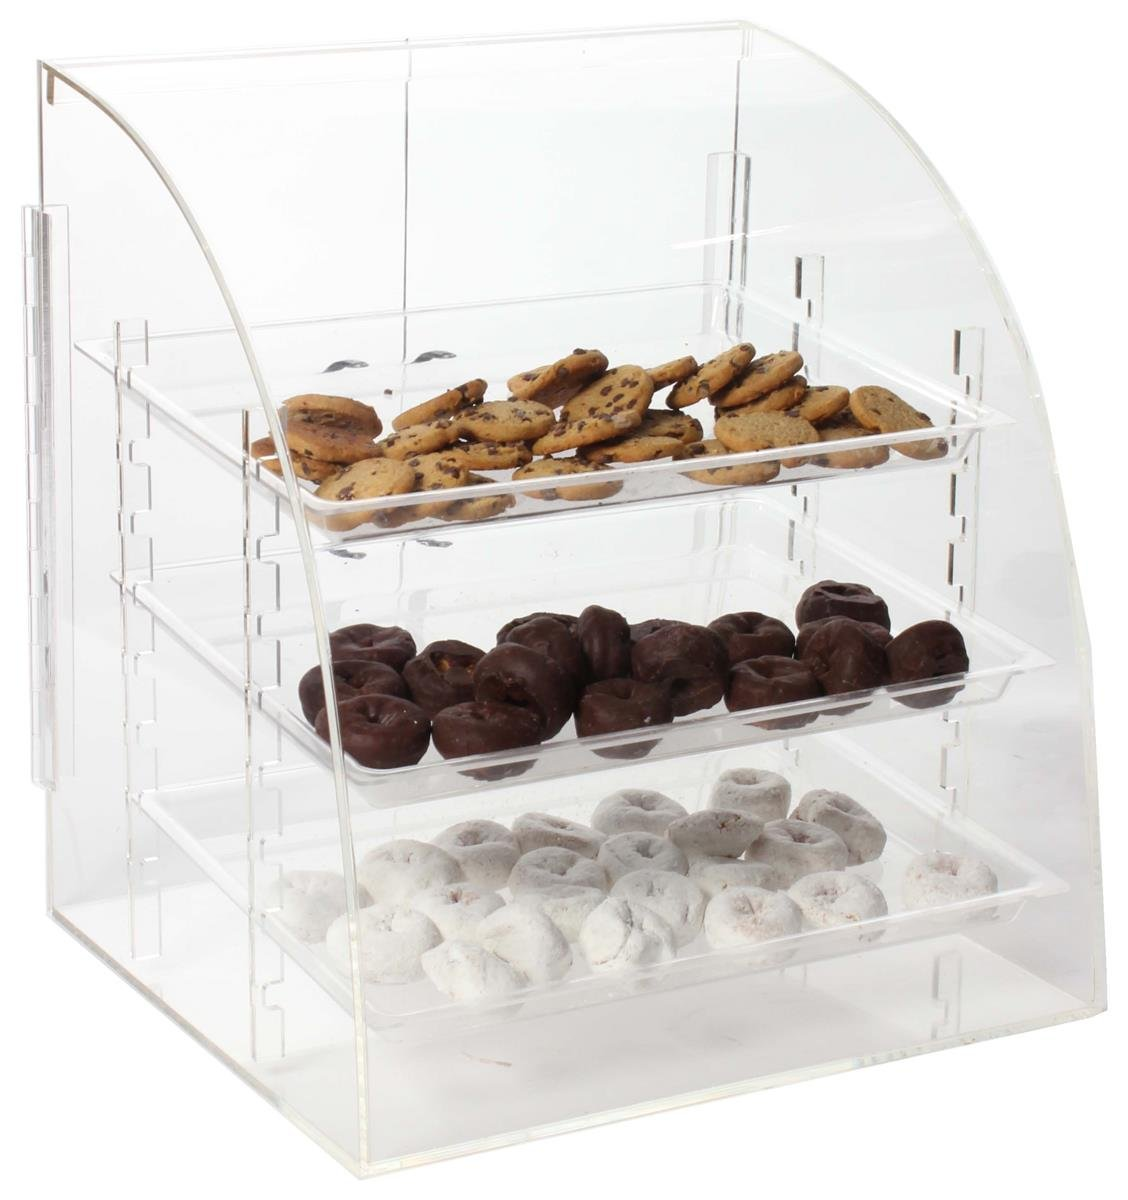 Clear Acrylic Countertop Food Display Case with Rear-Loading Doors and 3 Removable Trays, 16-1/4 x 17-1/2 x 14-1/2-Inch, Hinged Doors, Polished Edges